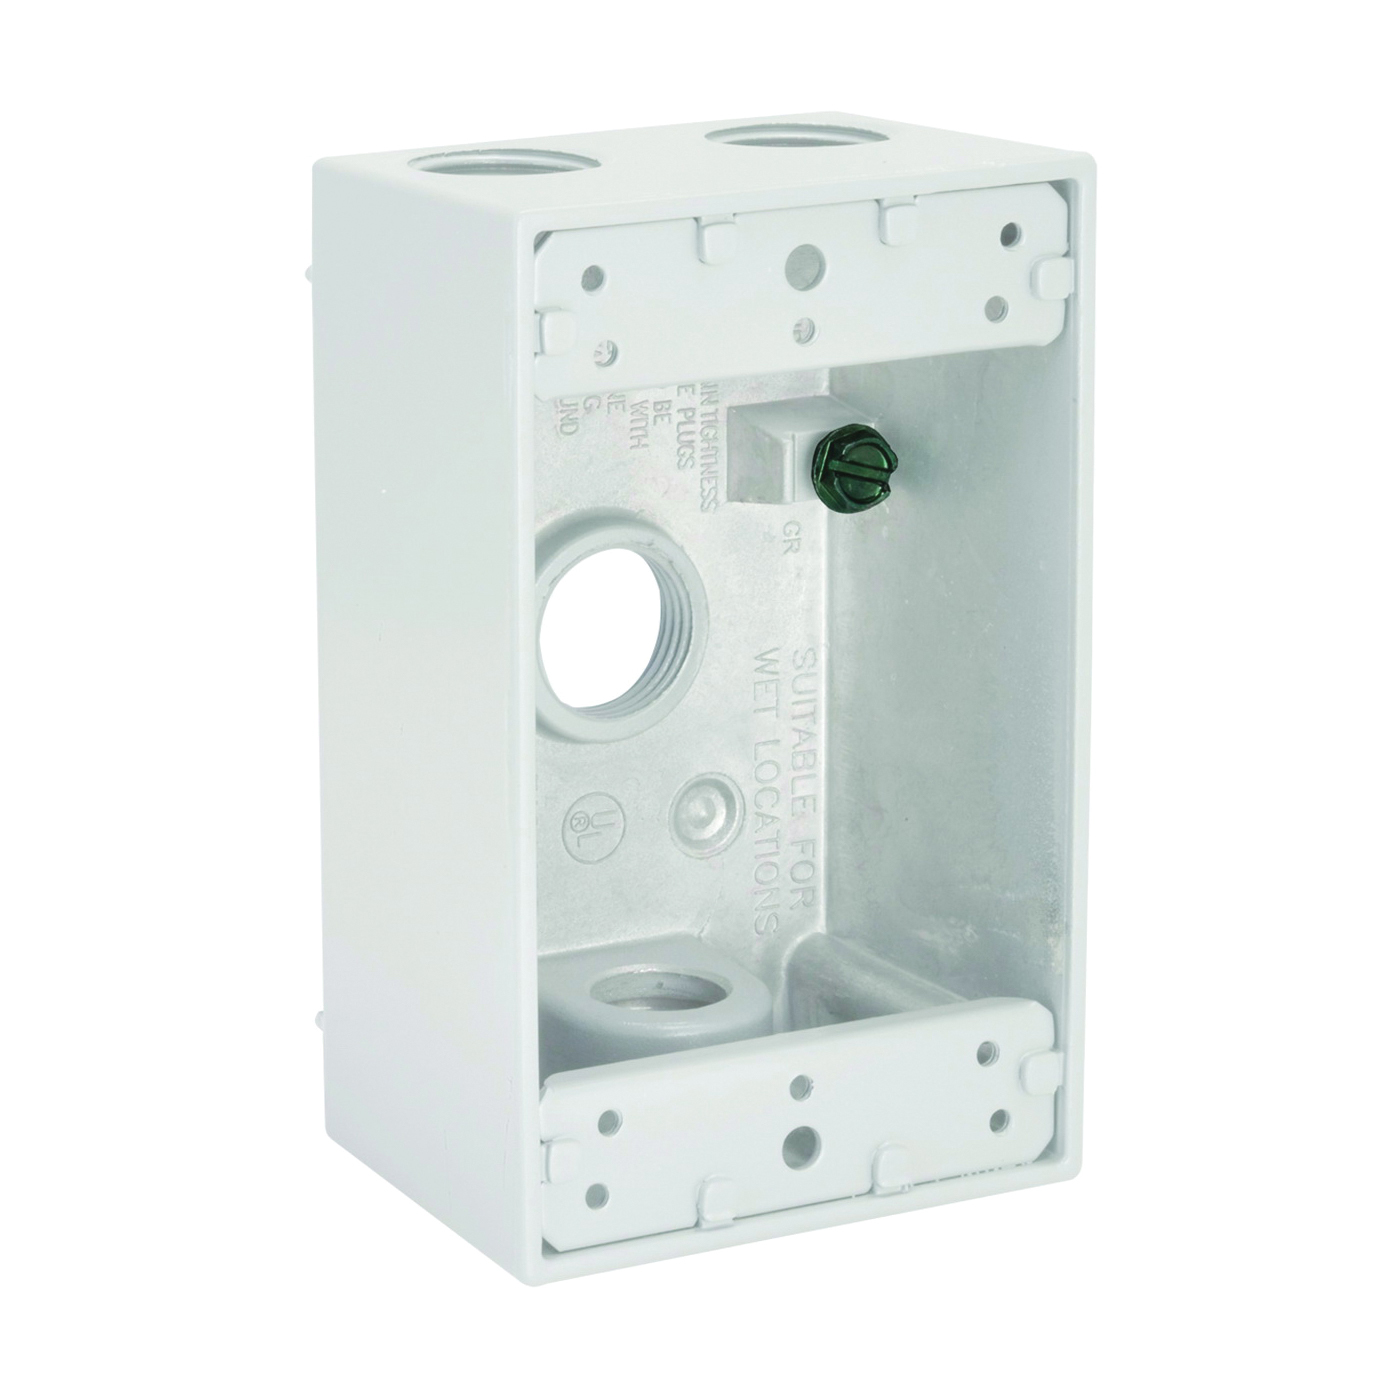 Picture of HUBBELL 5321-1 Box, 4-Outlet, 1-Gang, Aluminum, White, Powder-Coated